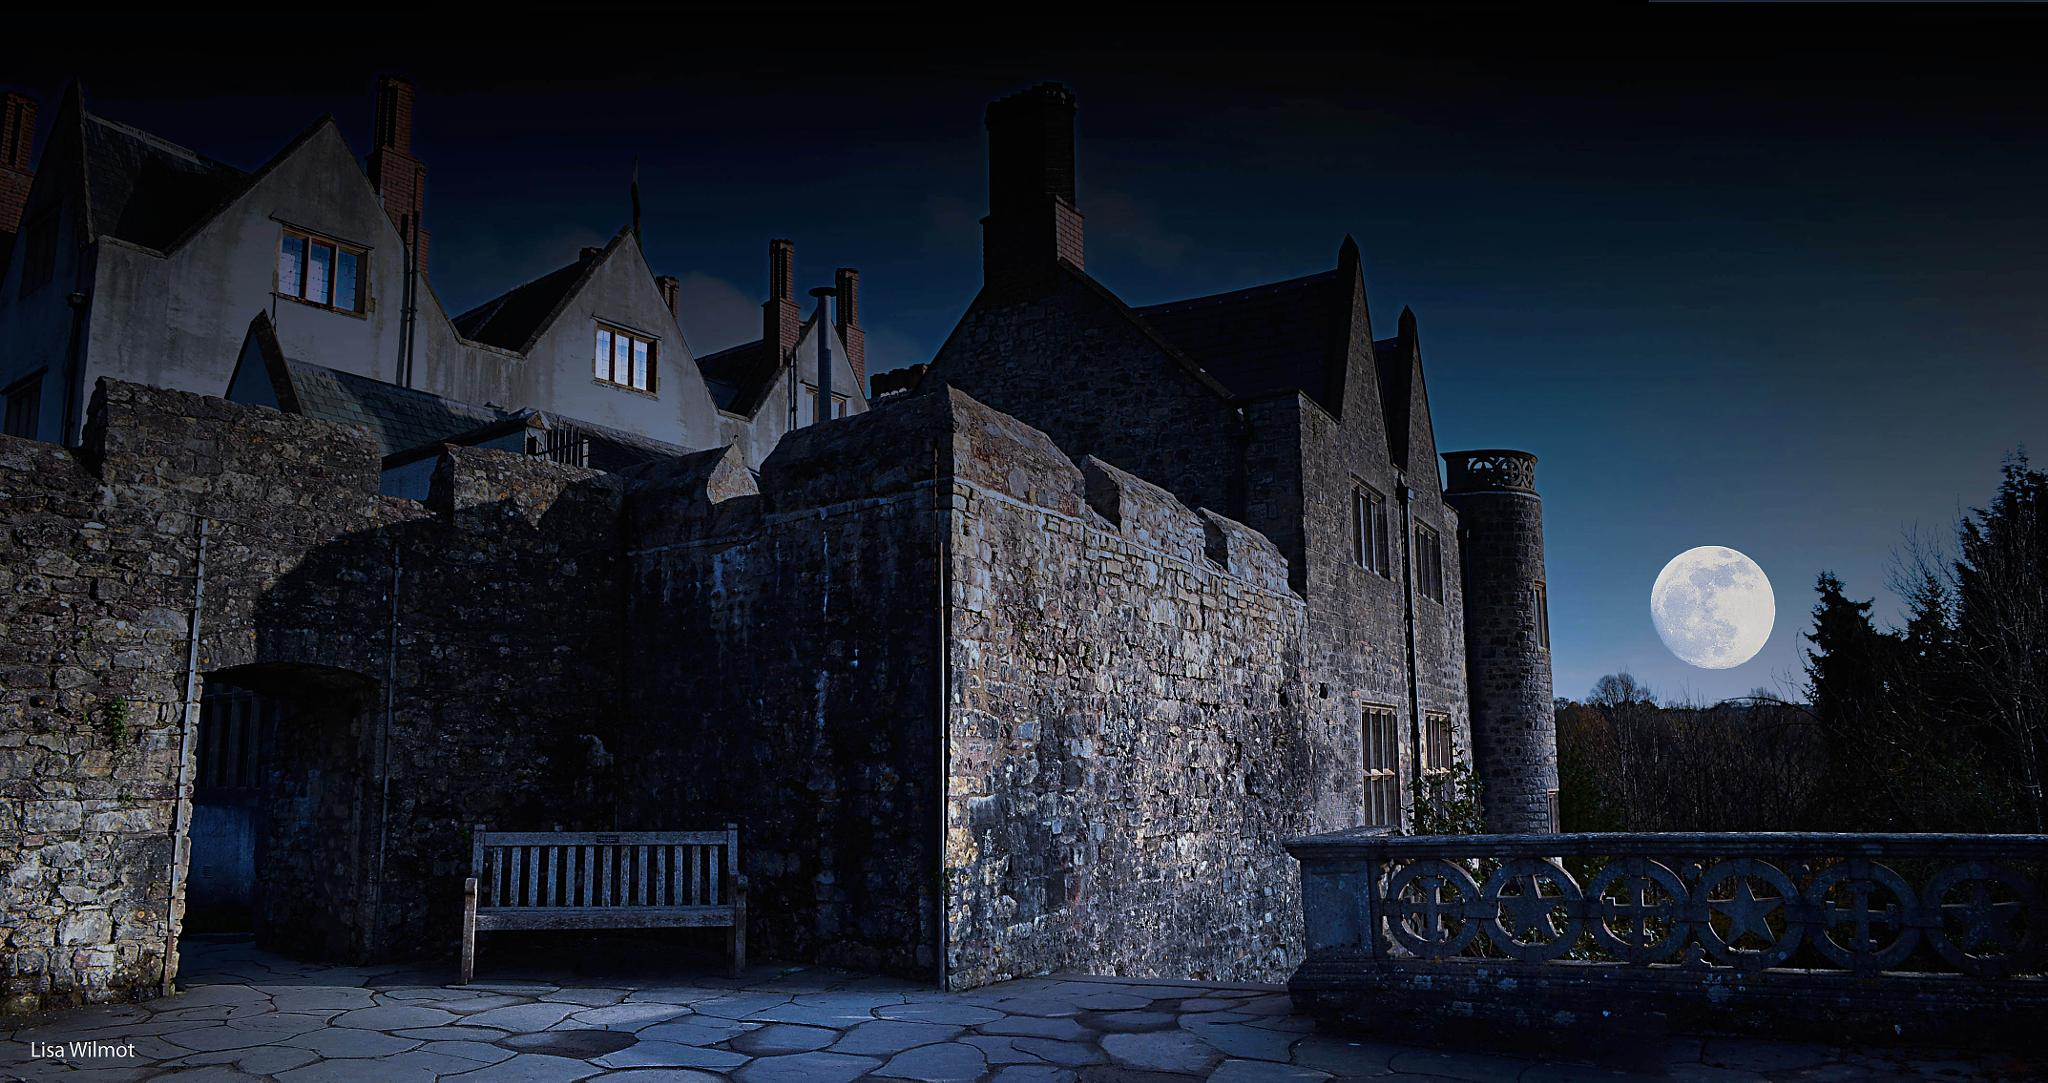 Super moon at the Castle by Lisa Wilmot